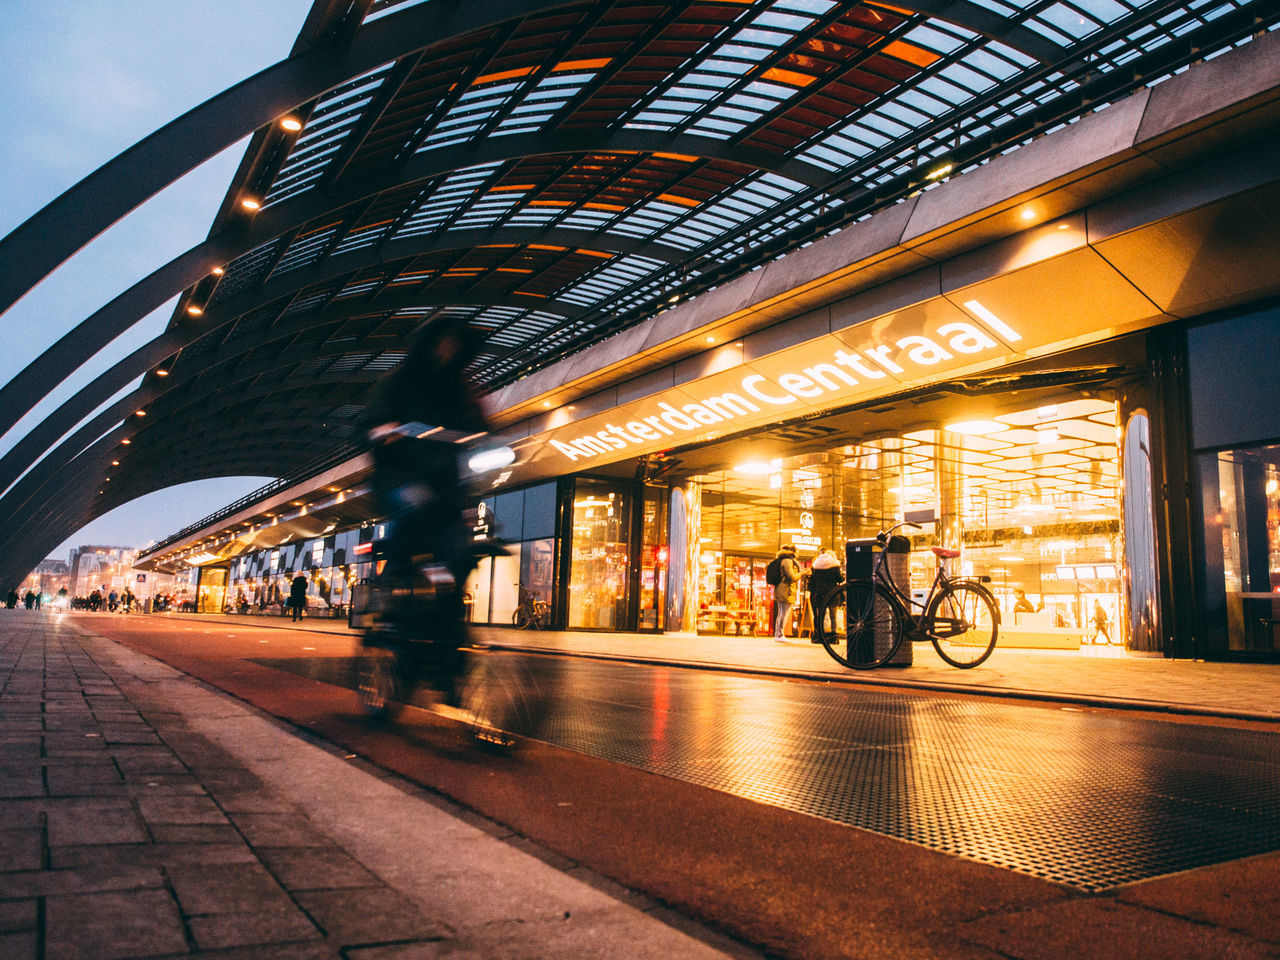 Amsterdam Architecture Blurred Motion Built Structure City Illuminated Lifestyles Motion Netherlands Night Outdoors People Public Transportation Railroad Station Real People The Street Photographer - 2017 EyeEm Awards Transportation